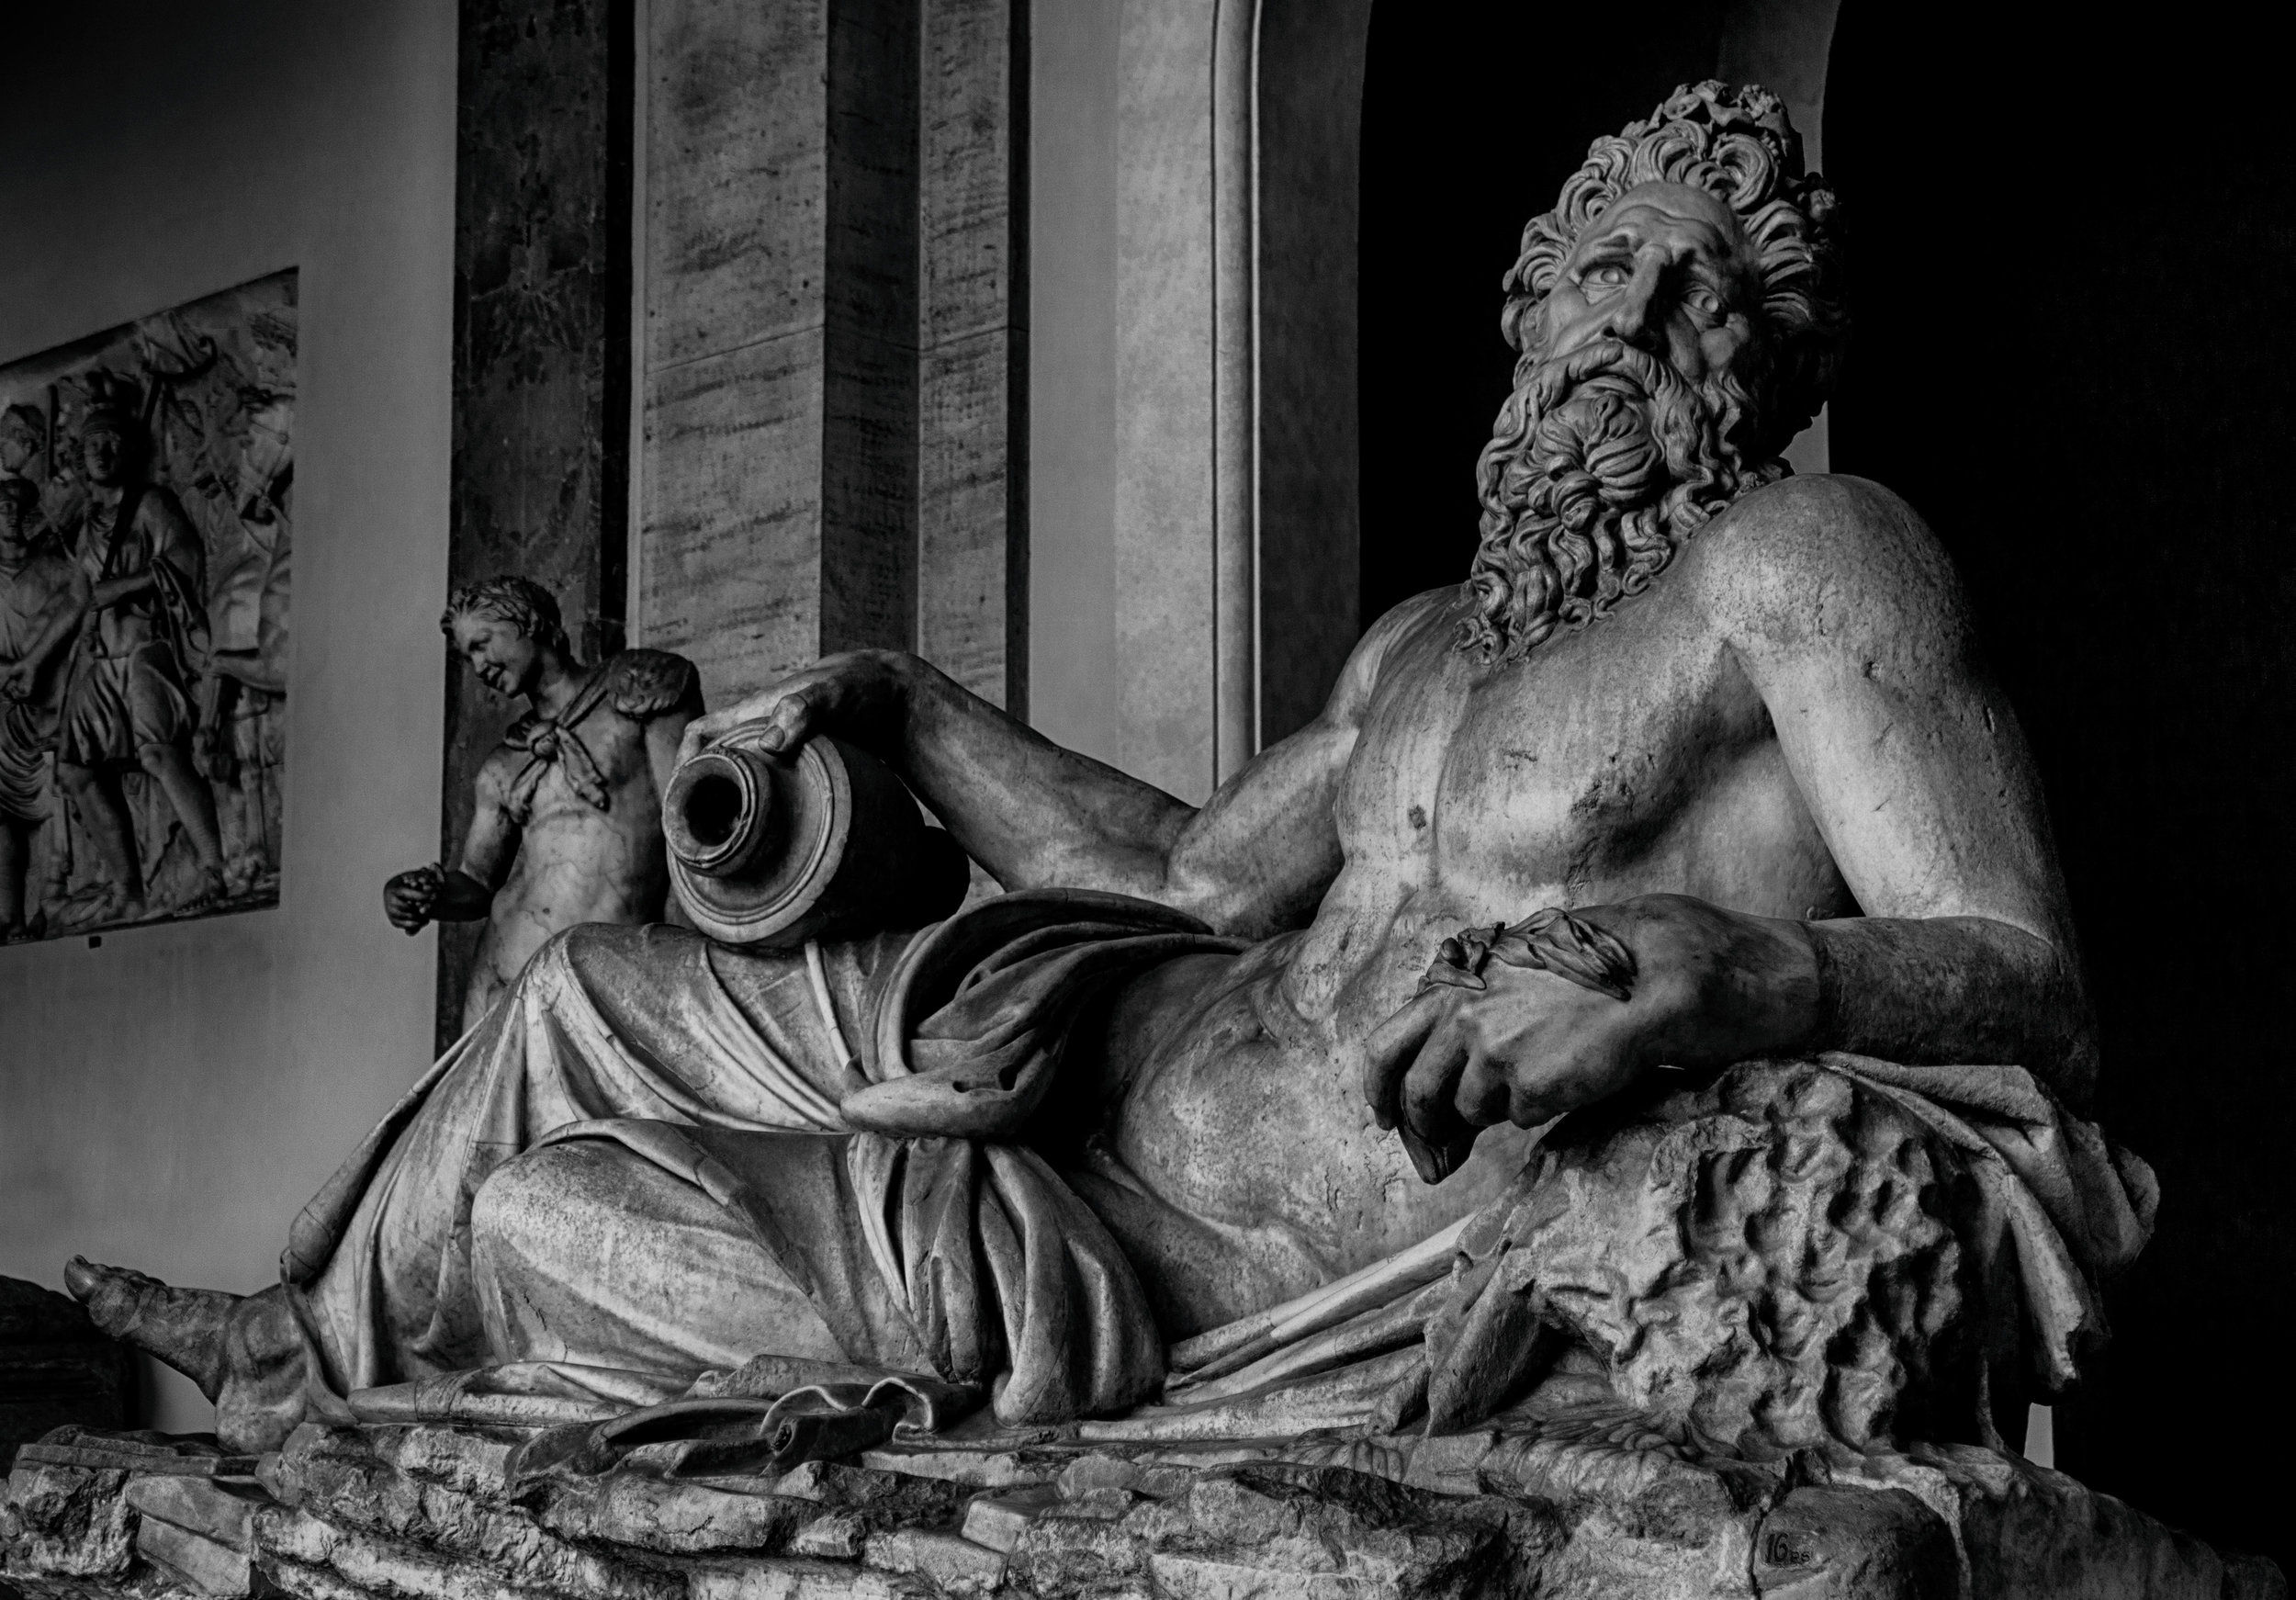 rome_st.peter_vickygood_travel_photography7sm.jpg